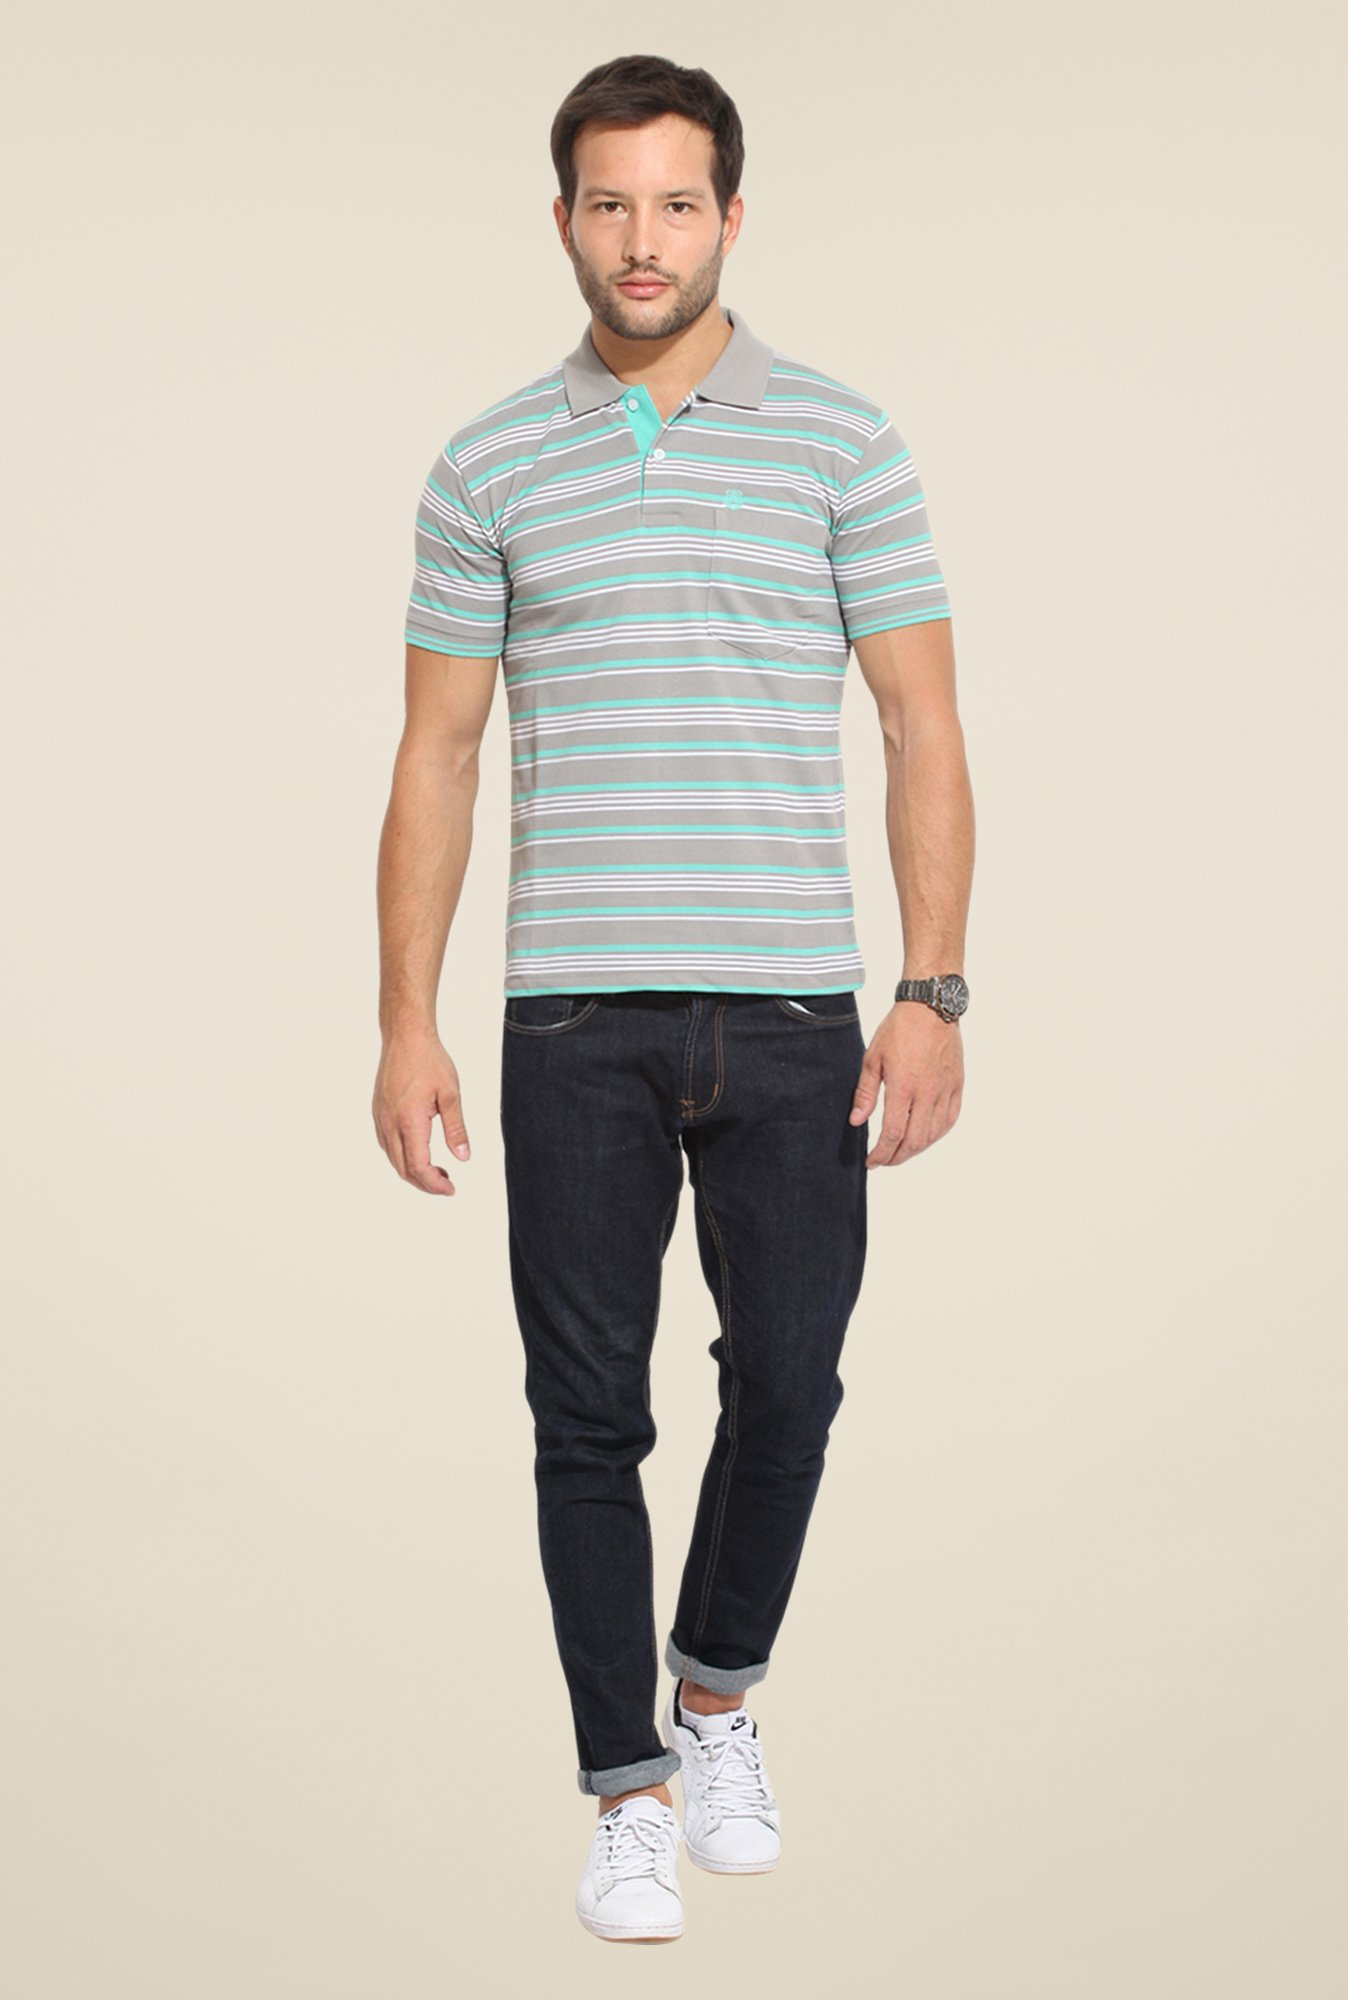 Duke Stardust Grey Striped T-shirt